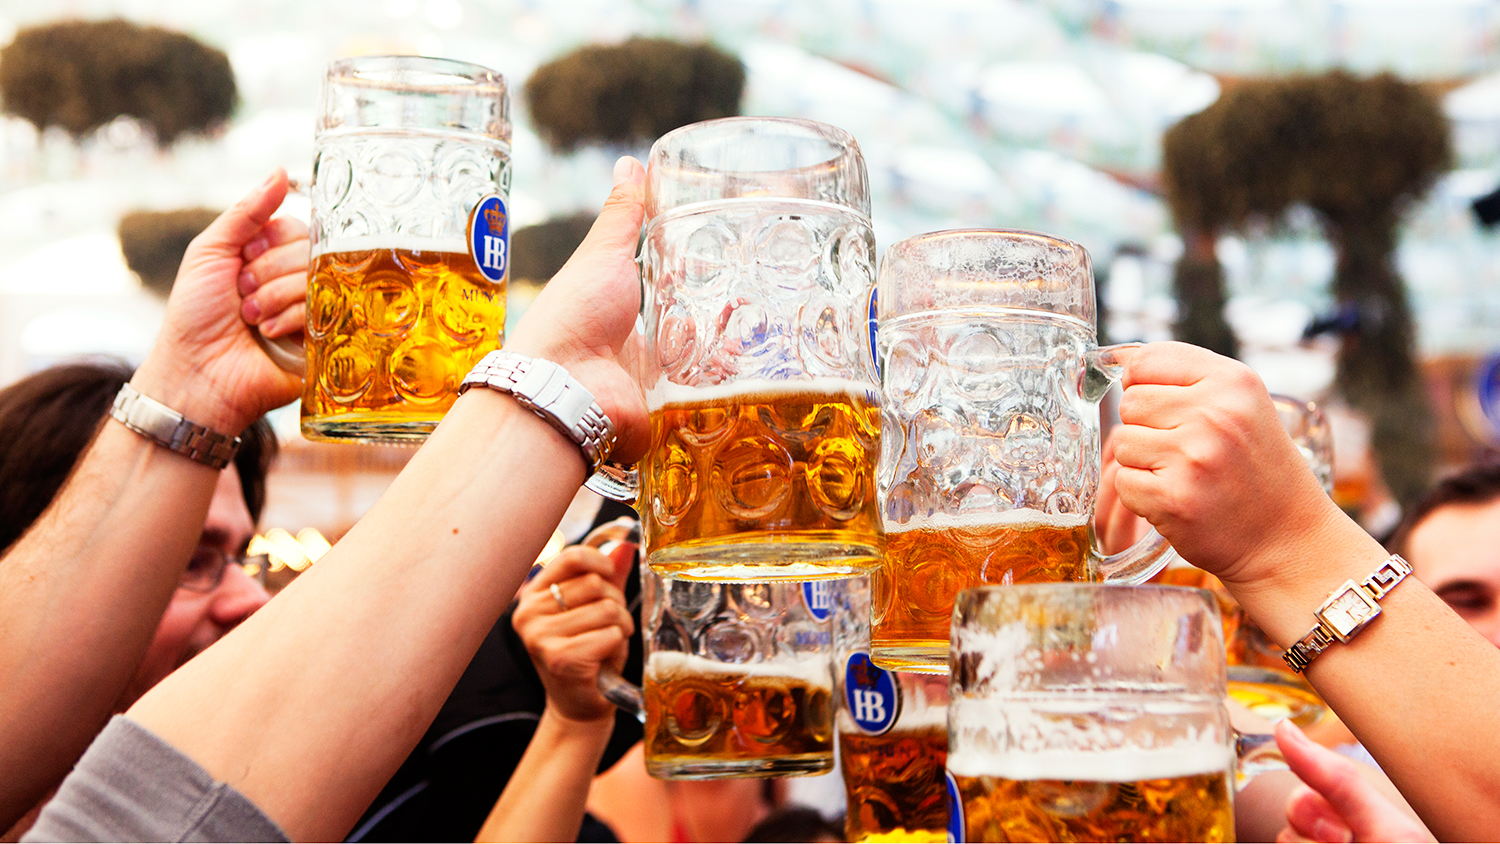 13 Big Beer Brands That Are Growing, Despite Slow Sales Across the Industry